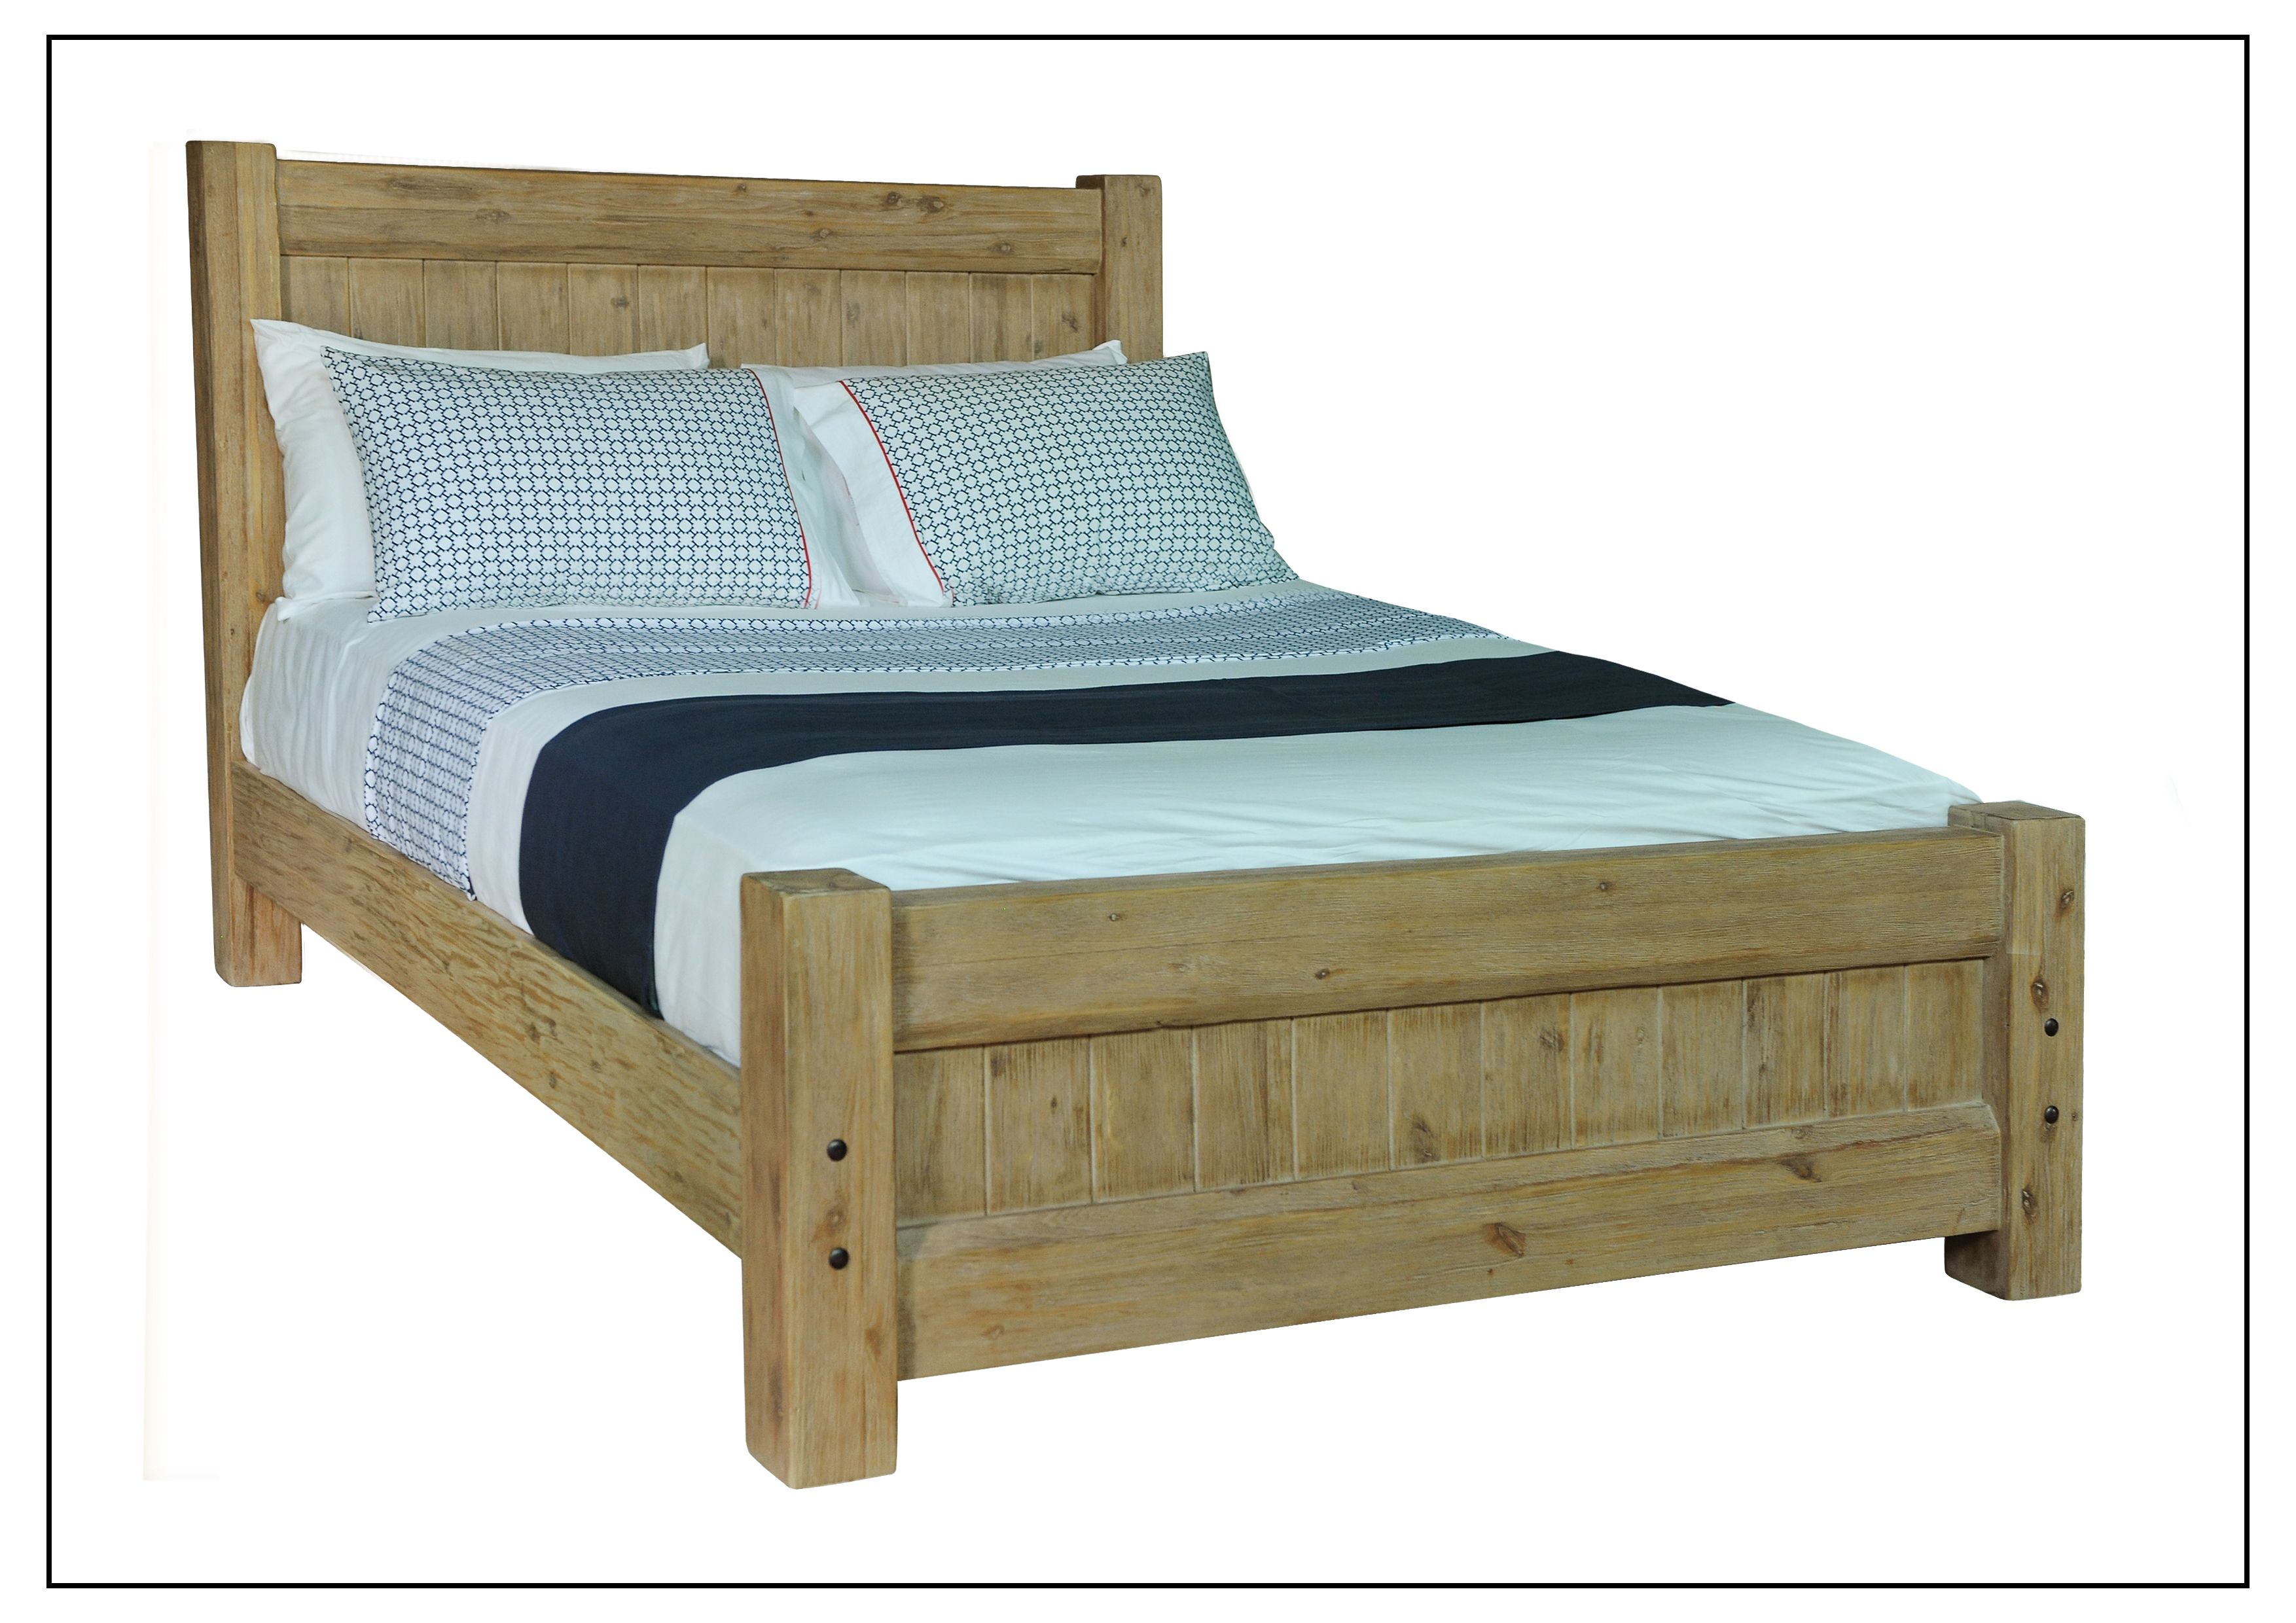 PQB022 Queen Bed Head Height 1250mm, Foot Height 550mm